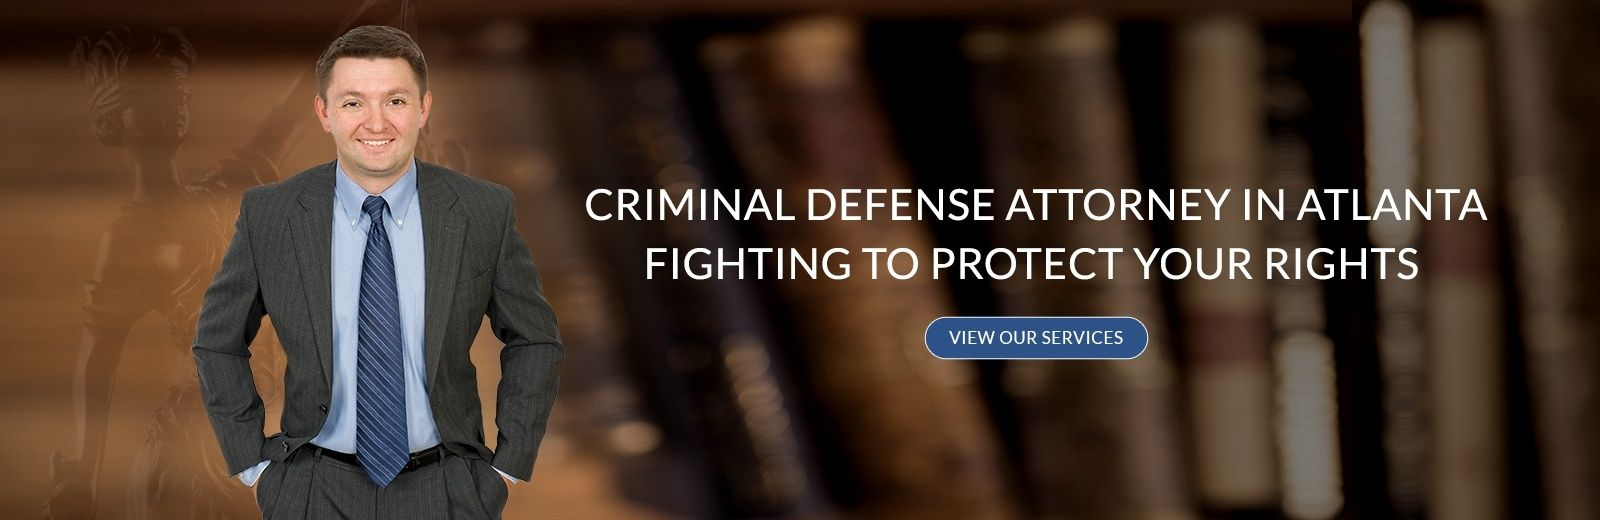 Kyle Jarzmik attorney website